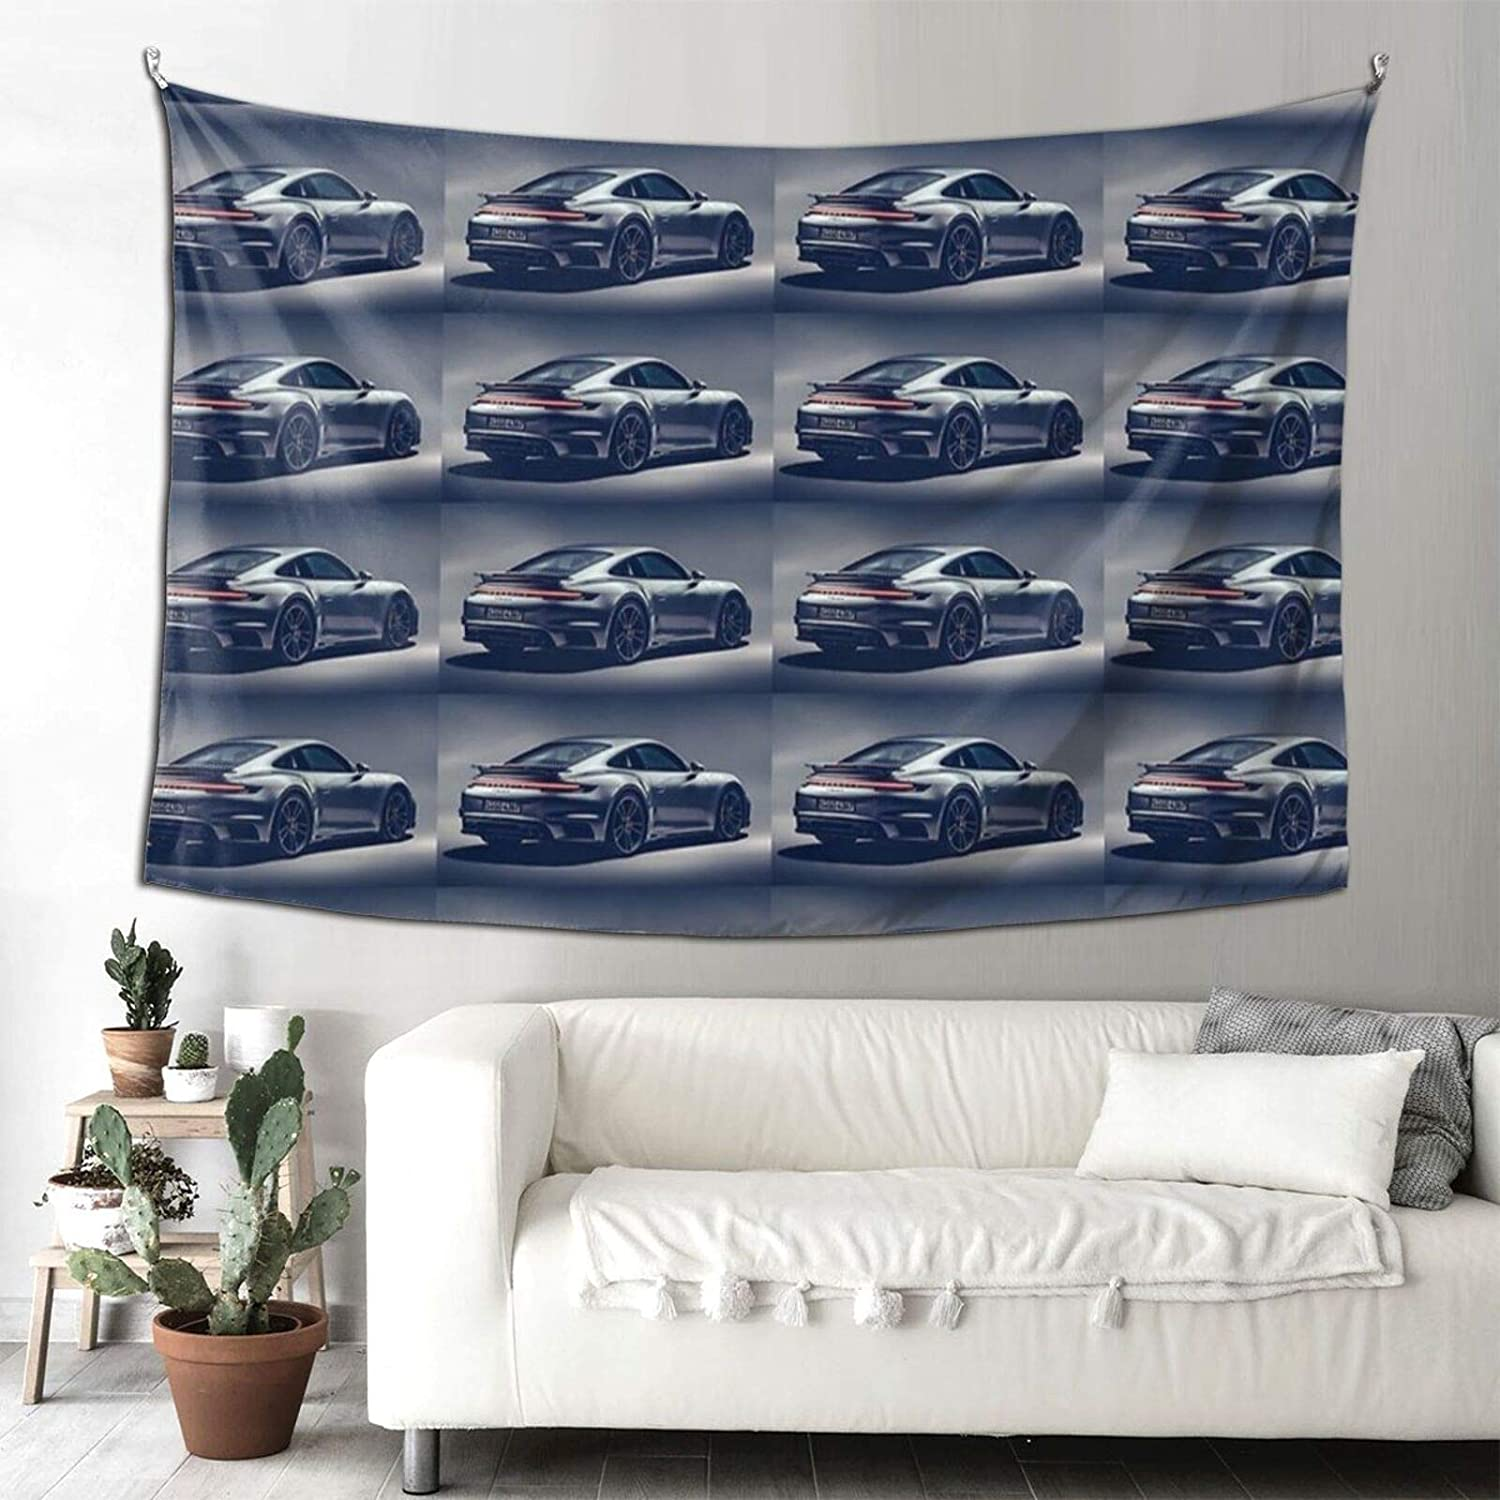 Jmire Porsche Tapestry Wall Hanging Tapestries for Living Room Bedroom Dorm Room Decor Blanket 90x60 inch